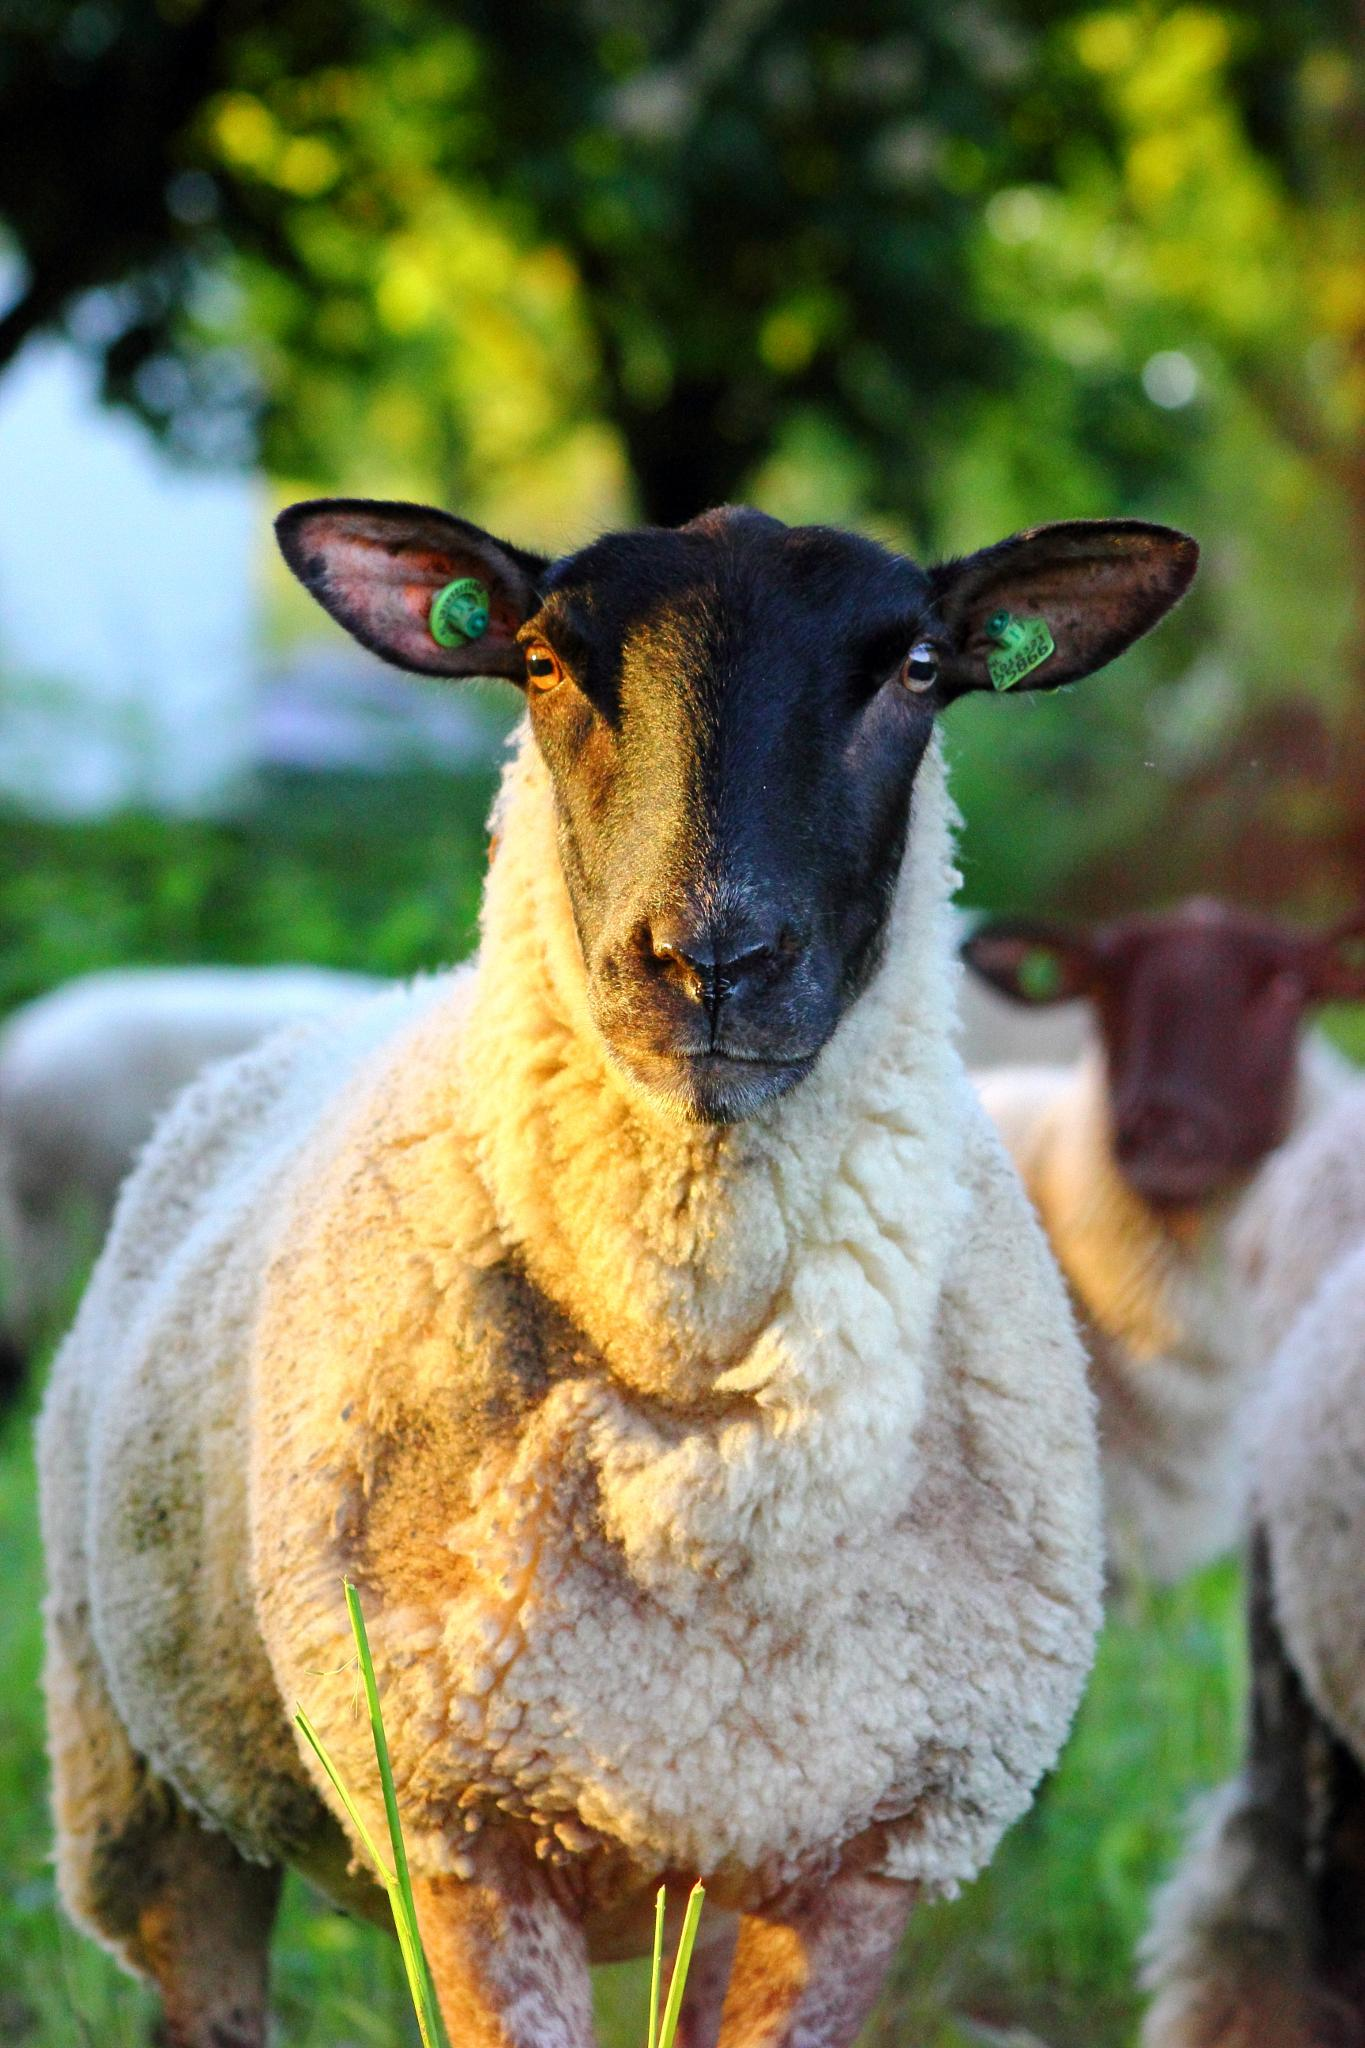 Attentive sheep by Jette Reitsma